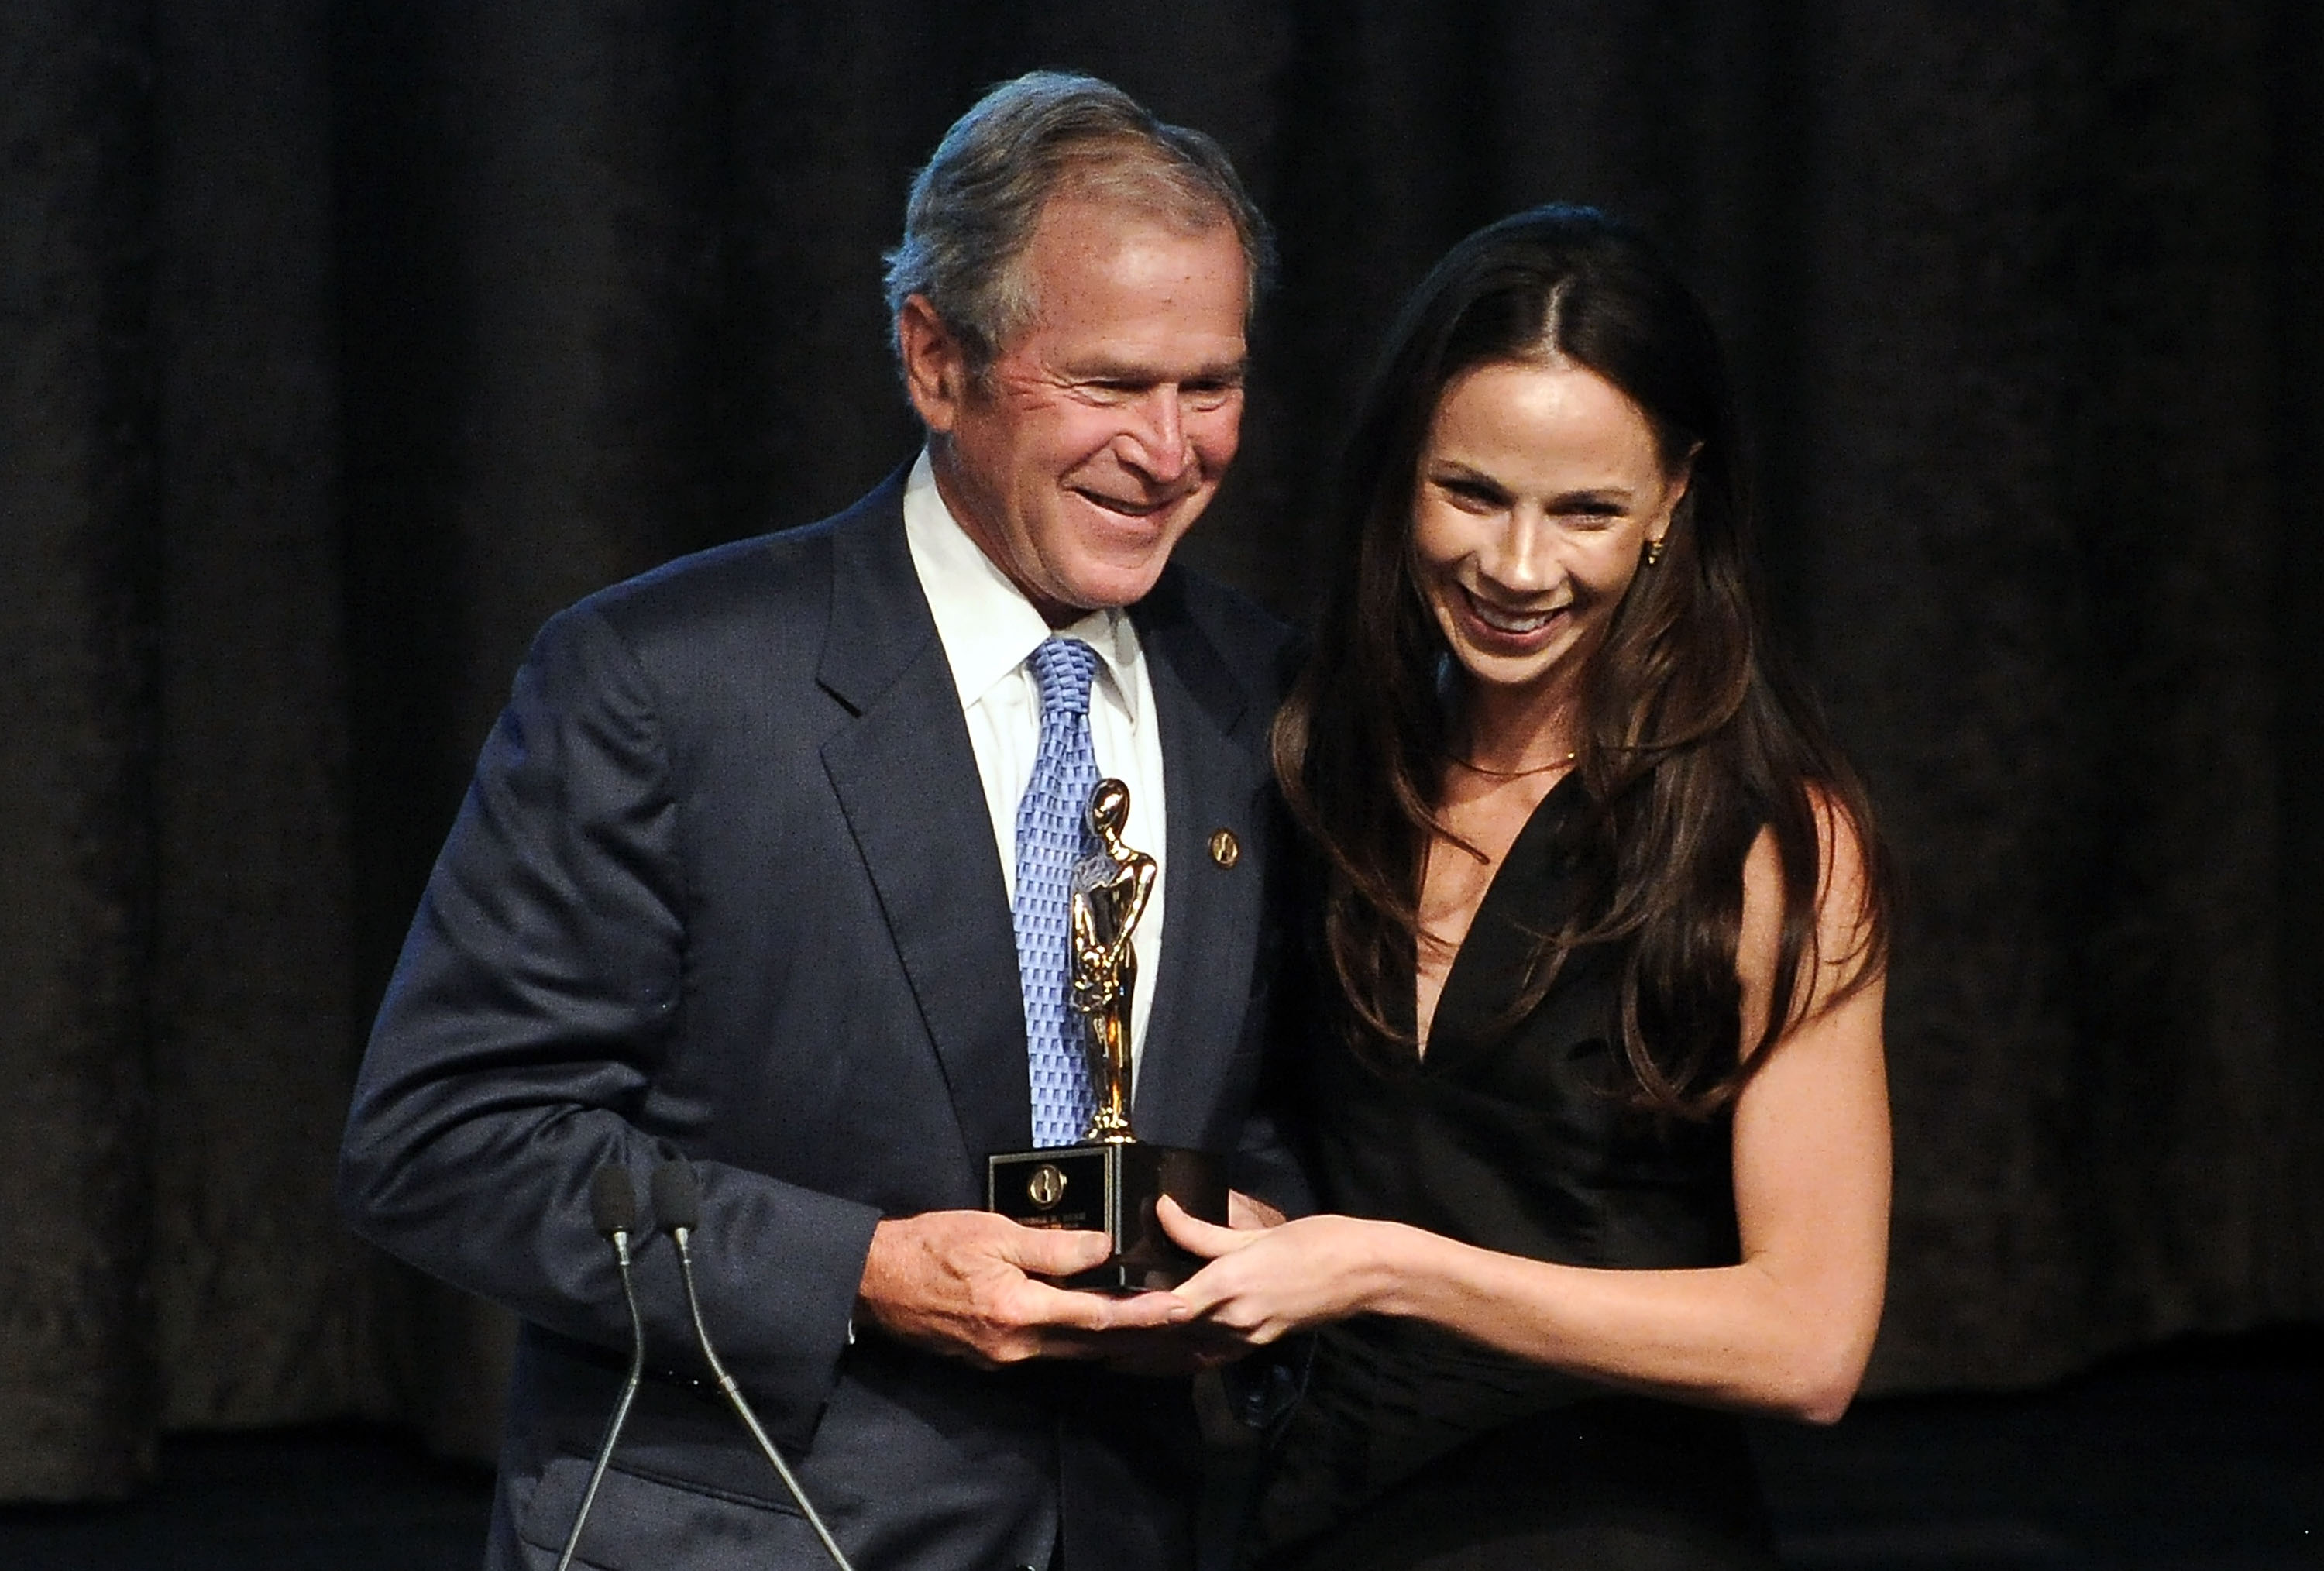 NEW YORK, NY - JUNE 18:  Former President of the United States George W. Bush and daughter Barbara Bush attend the 2015 Father Of The Year Luncheon Awards at New York Hilton on June 18, 2015 in New York City.  (Photo by Daniel Zuchnik/WireImage)